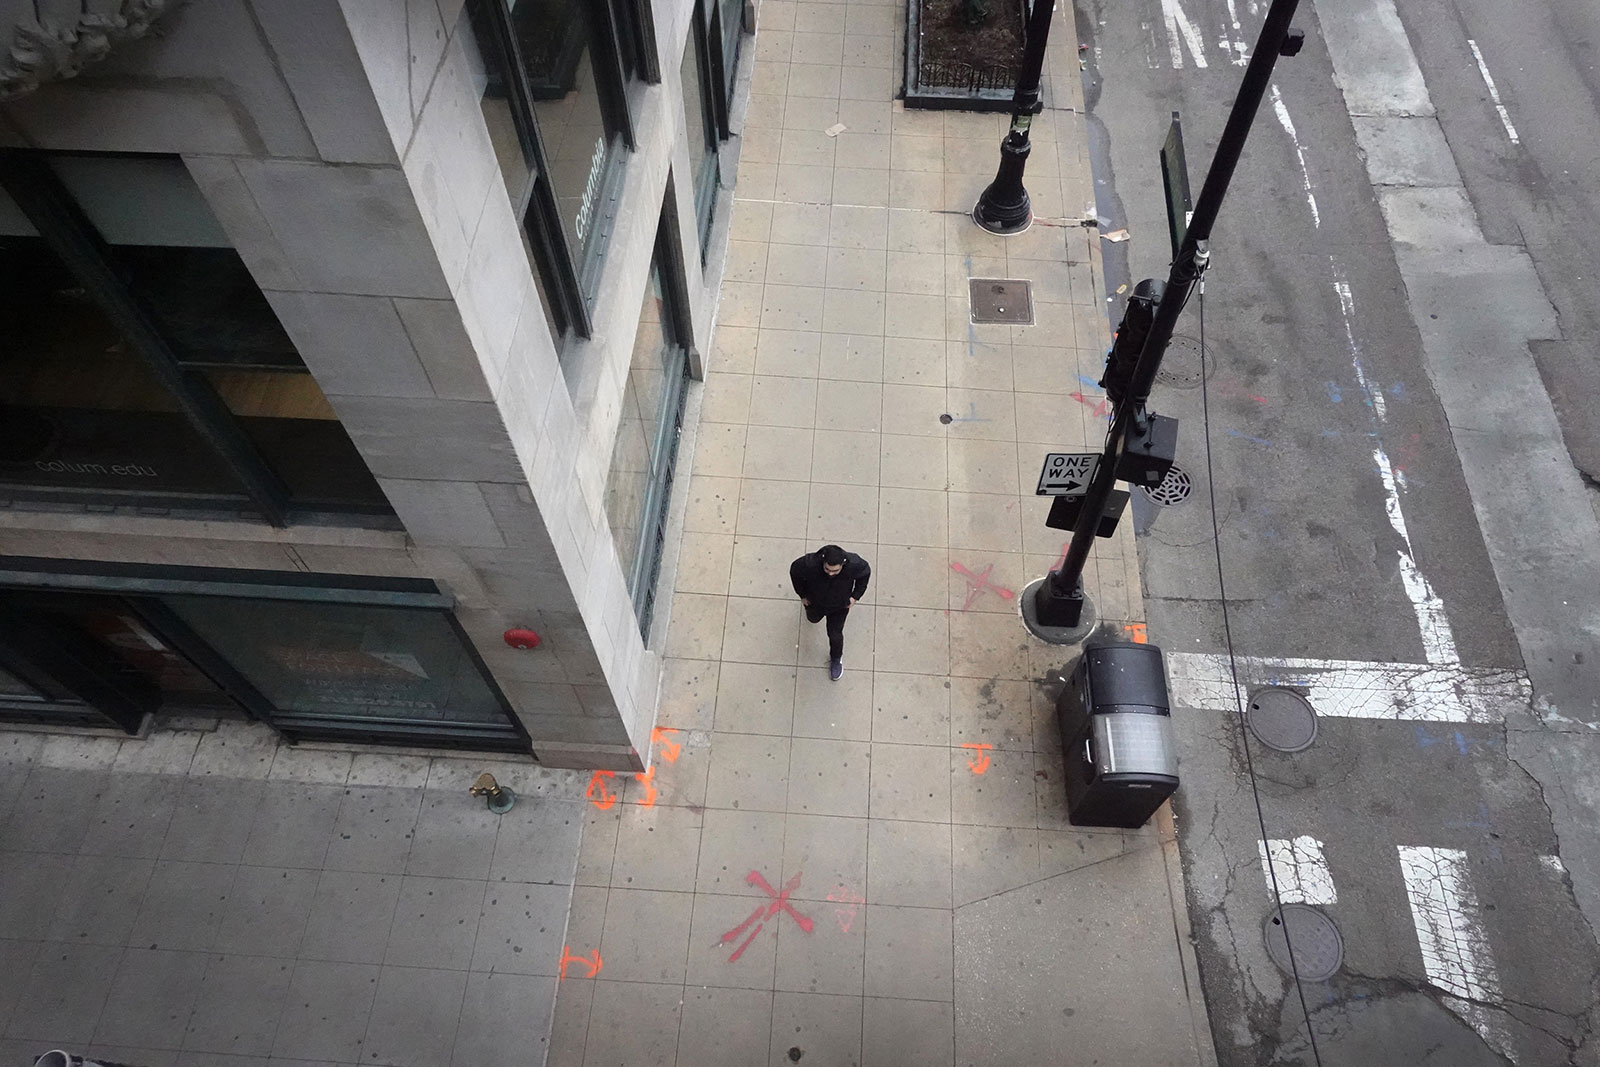 A person walks down a sidewalk in Chicago, Illinois, on March 20.